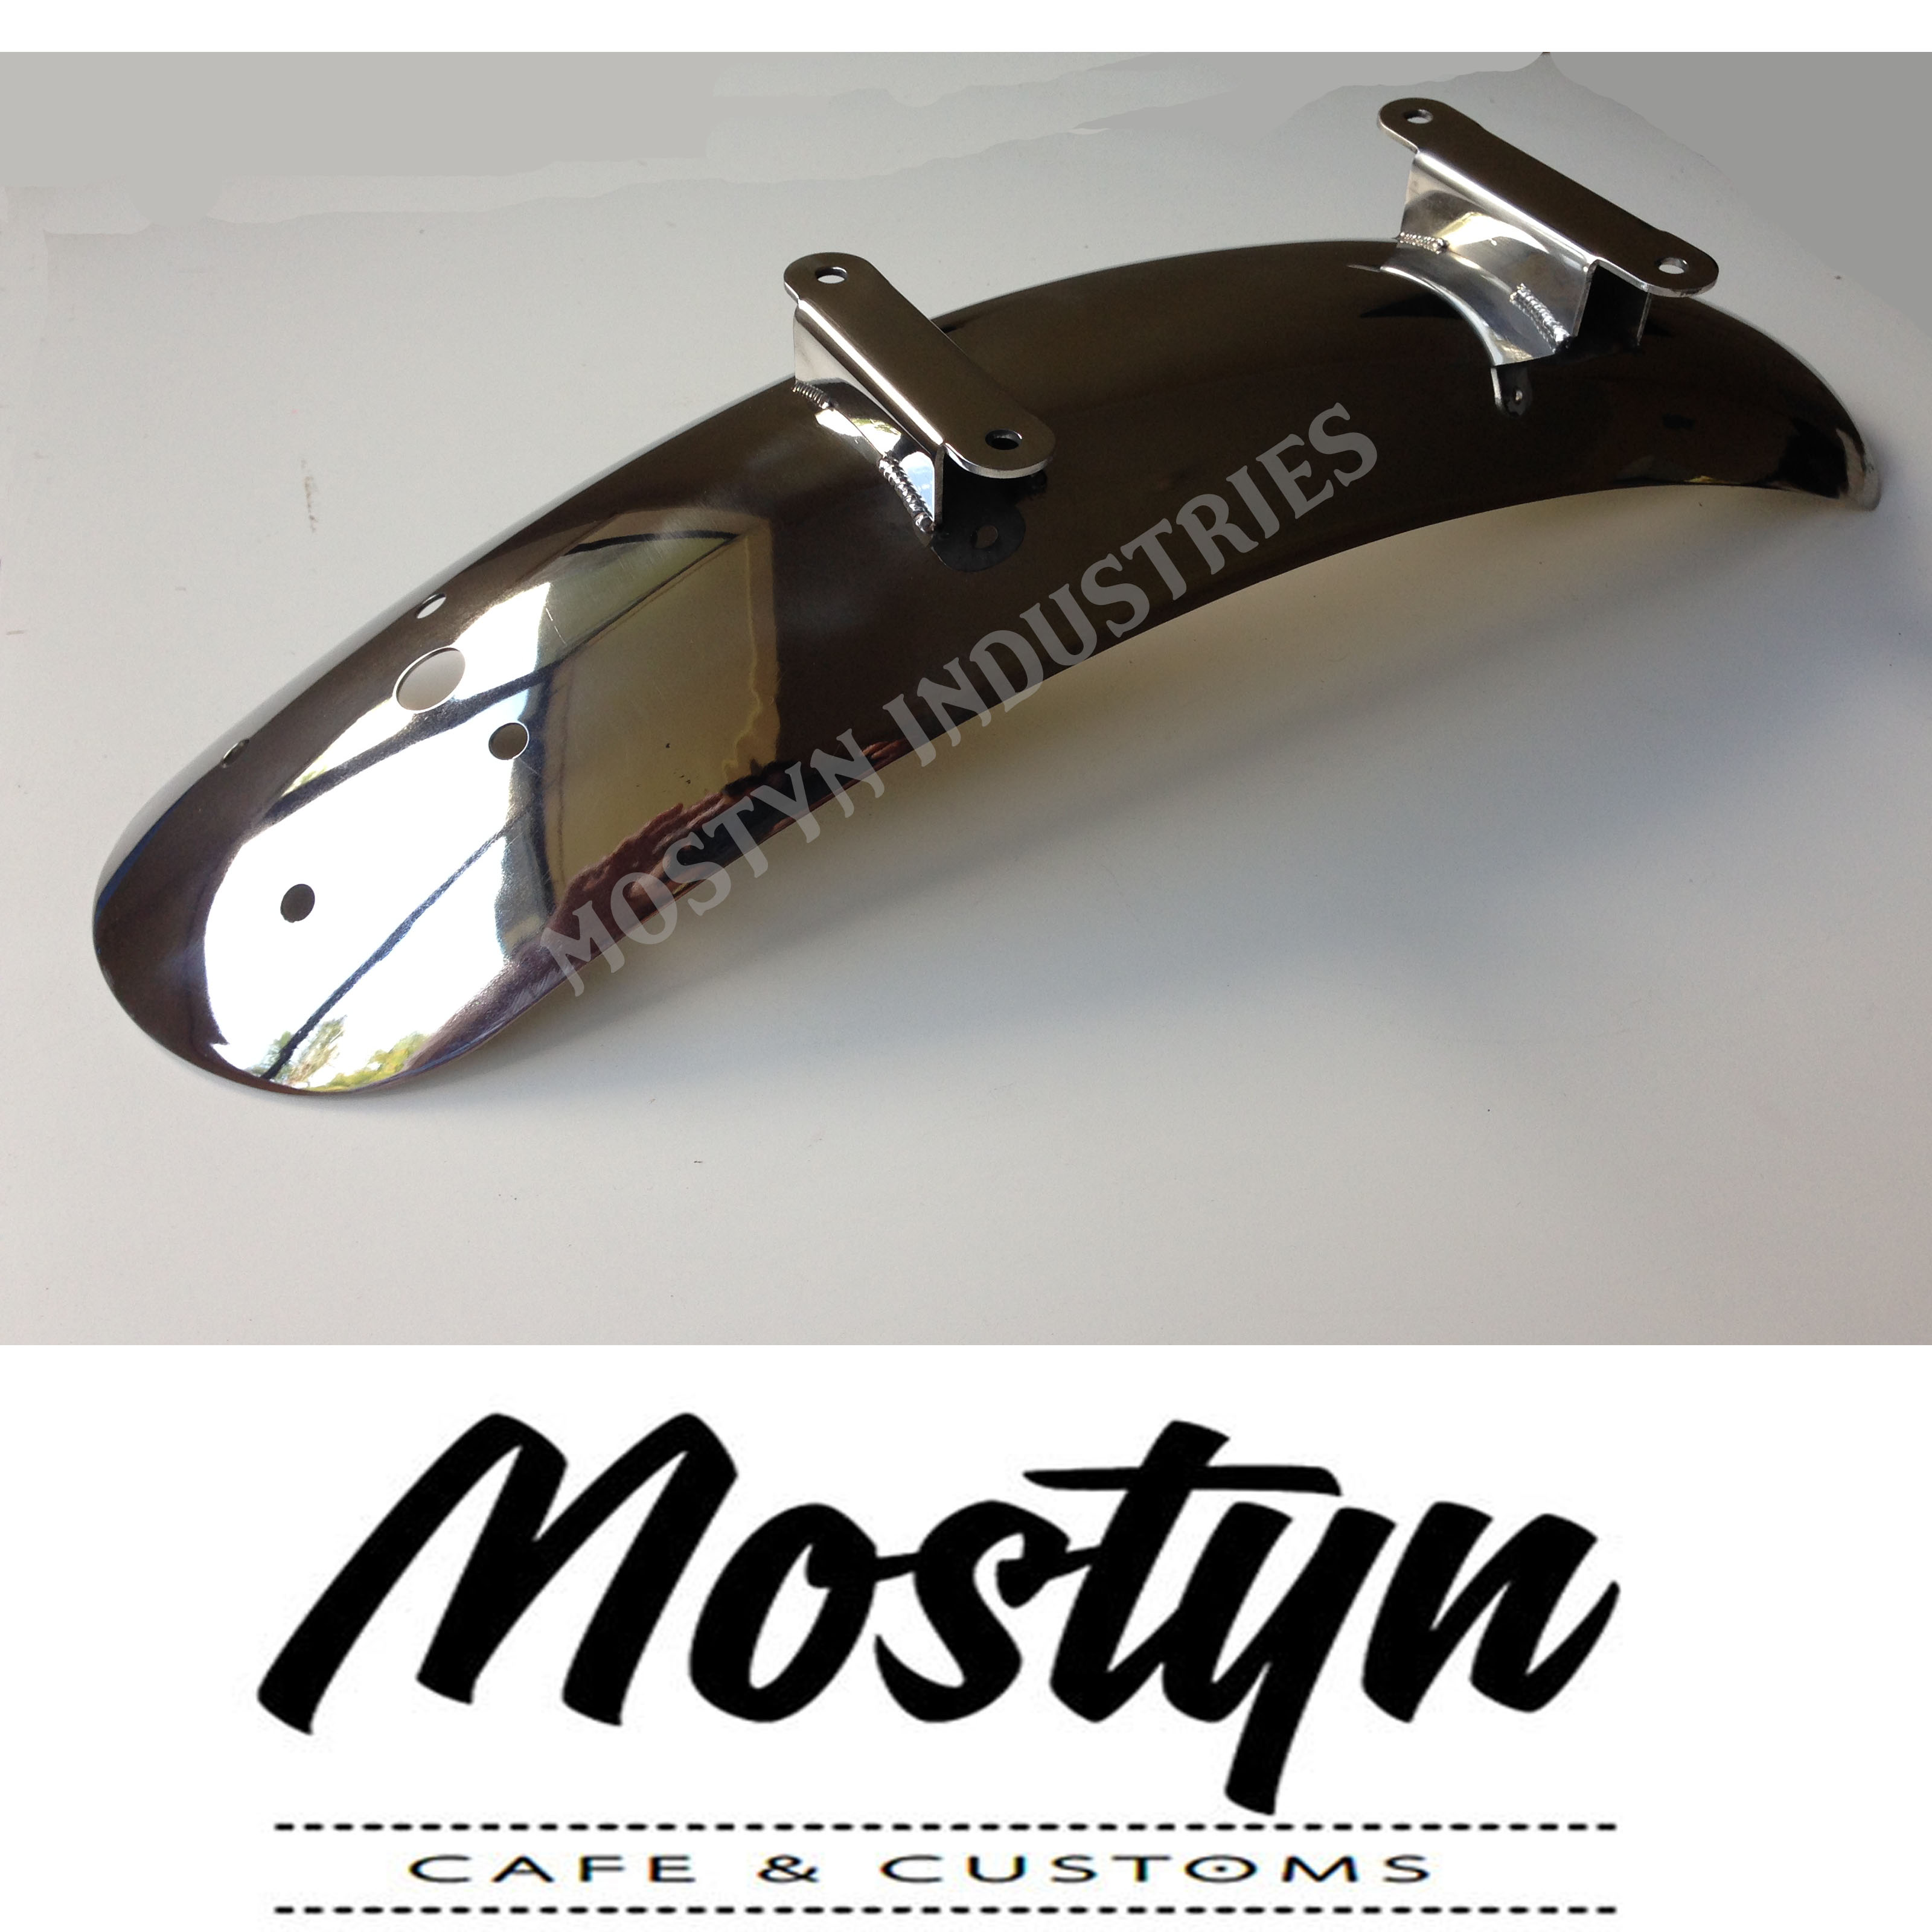 W650 W800 Custom And Oem Parts Available At Mostyn Cafe And Customs